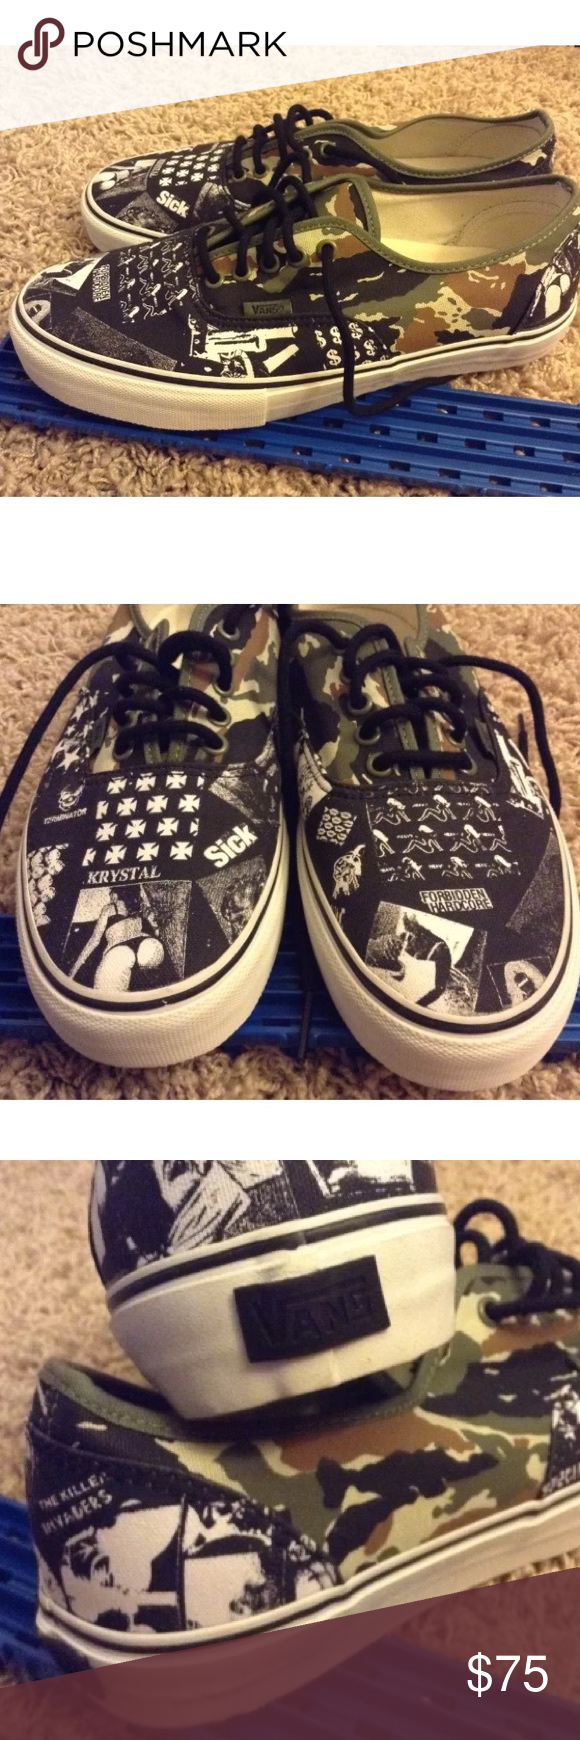 57392a7380 NEW Vans Syndicate China Girl Summer Weirdo Dave Brand  Vans Size  Mens US  10.5